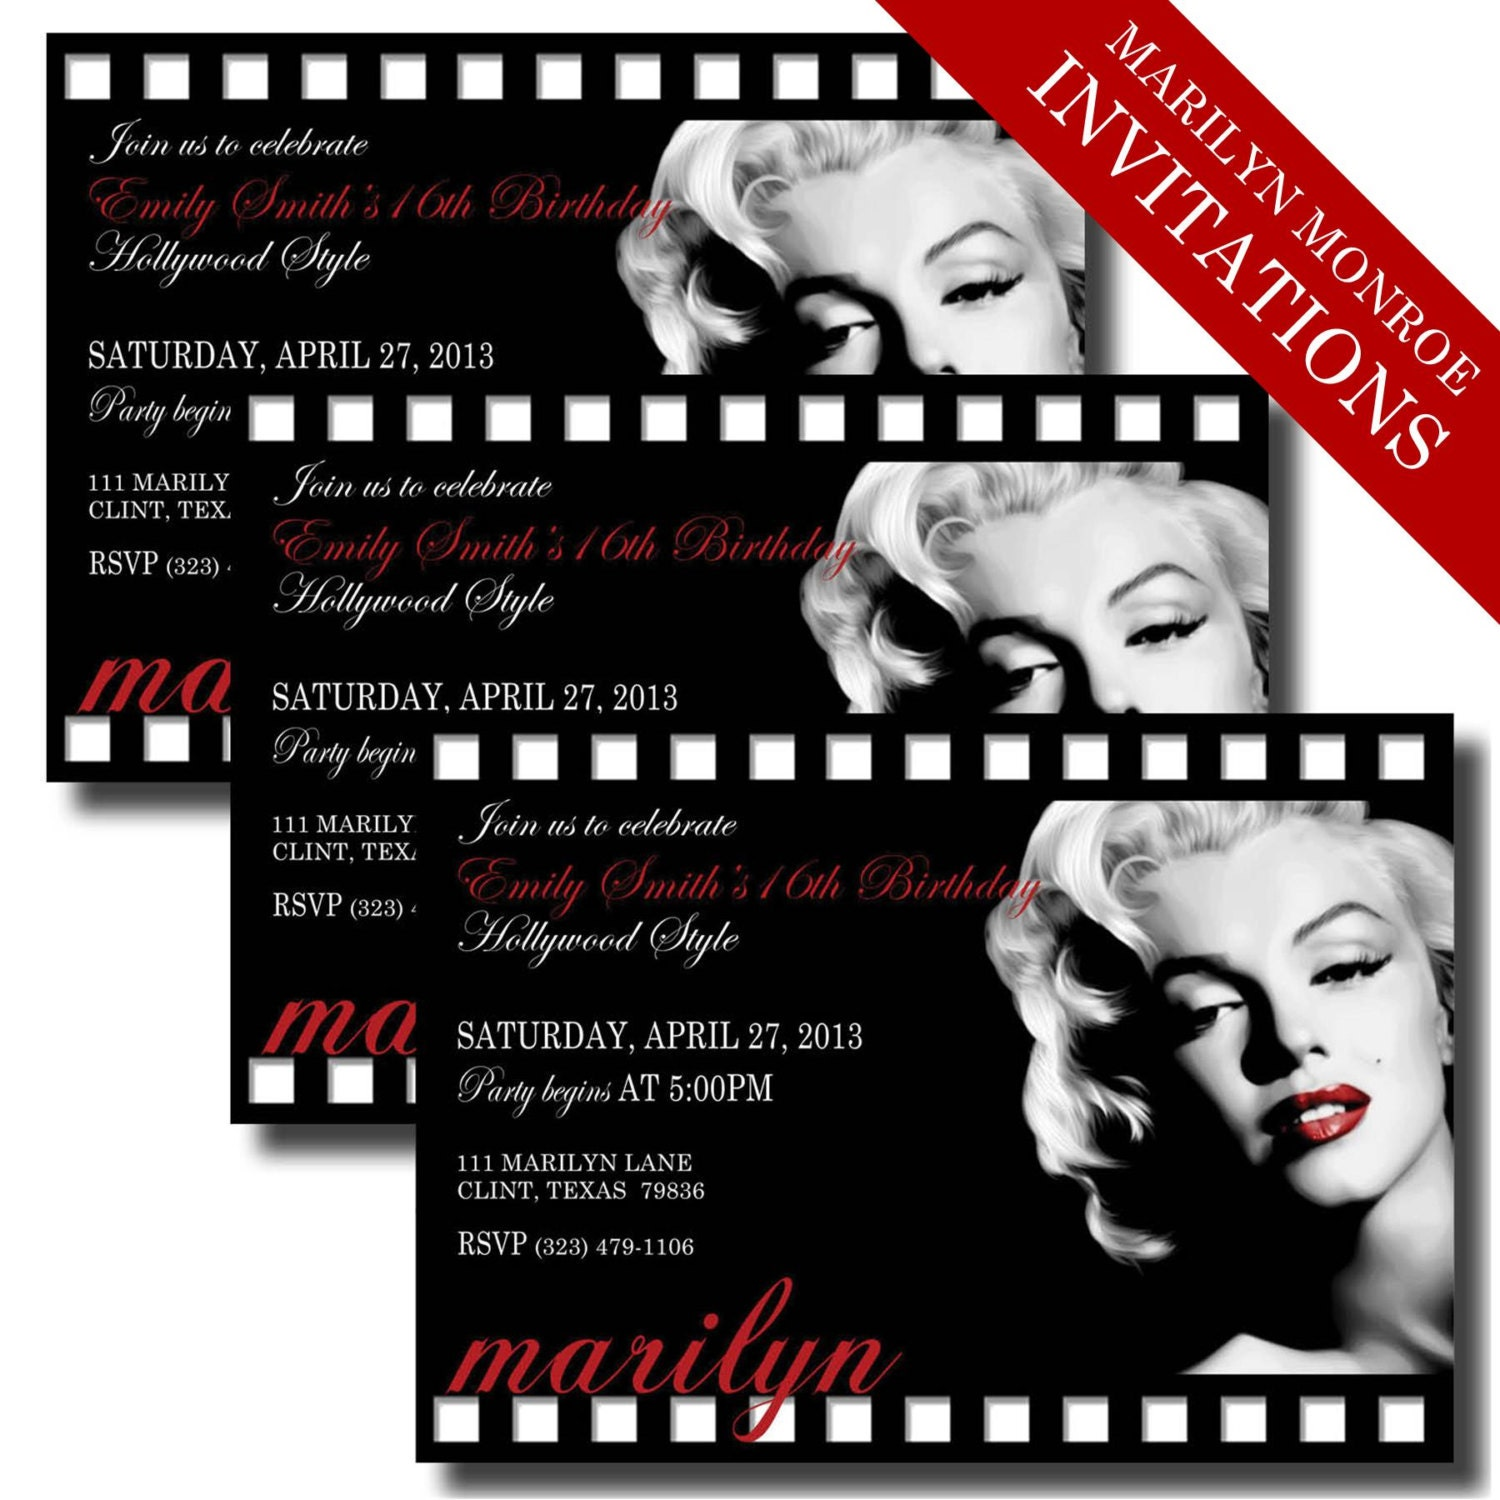 Free Movie Night Party Printables By Printabelle additionally 2015 Oscar Party Printable Invitation additionally 434386326530306691 besides Marilyn Monroe Invitations Printable in addition Wedding Anniversary Quotes In Spanish. on oscar party invite wording